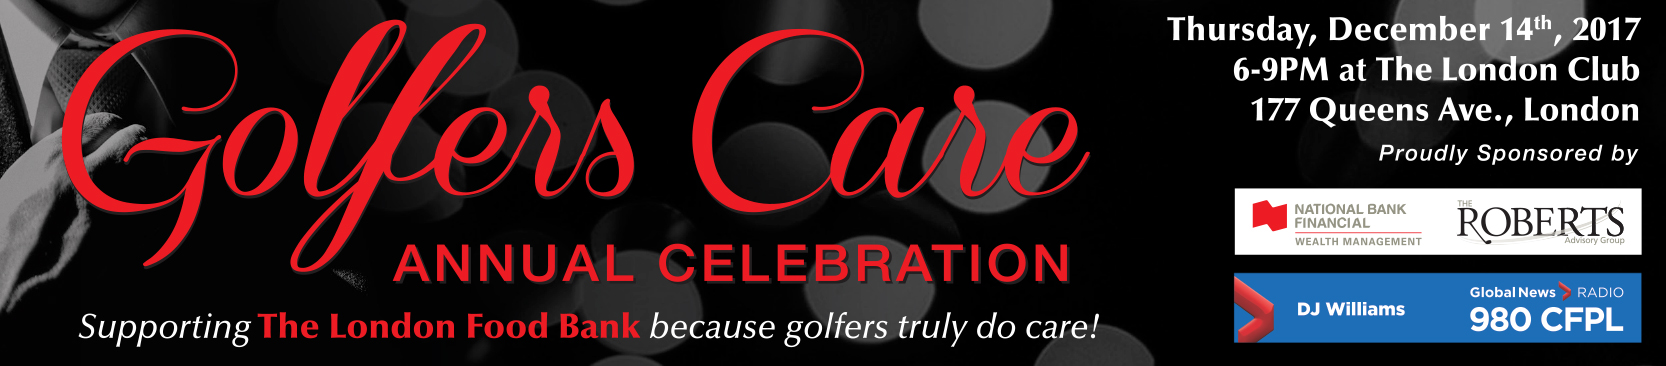 2017 Golfers Care Banner